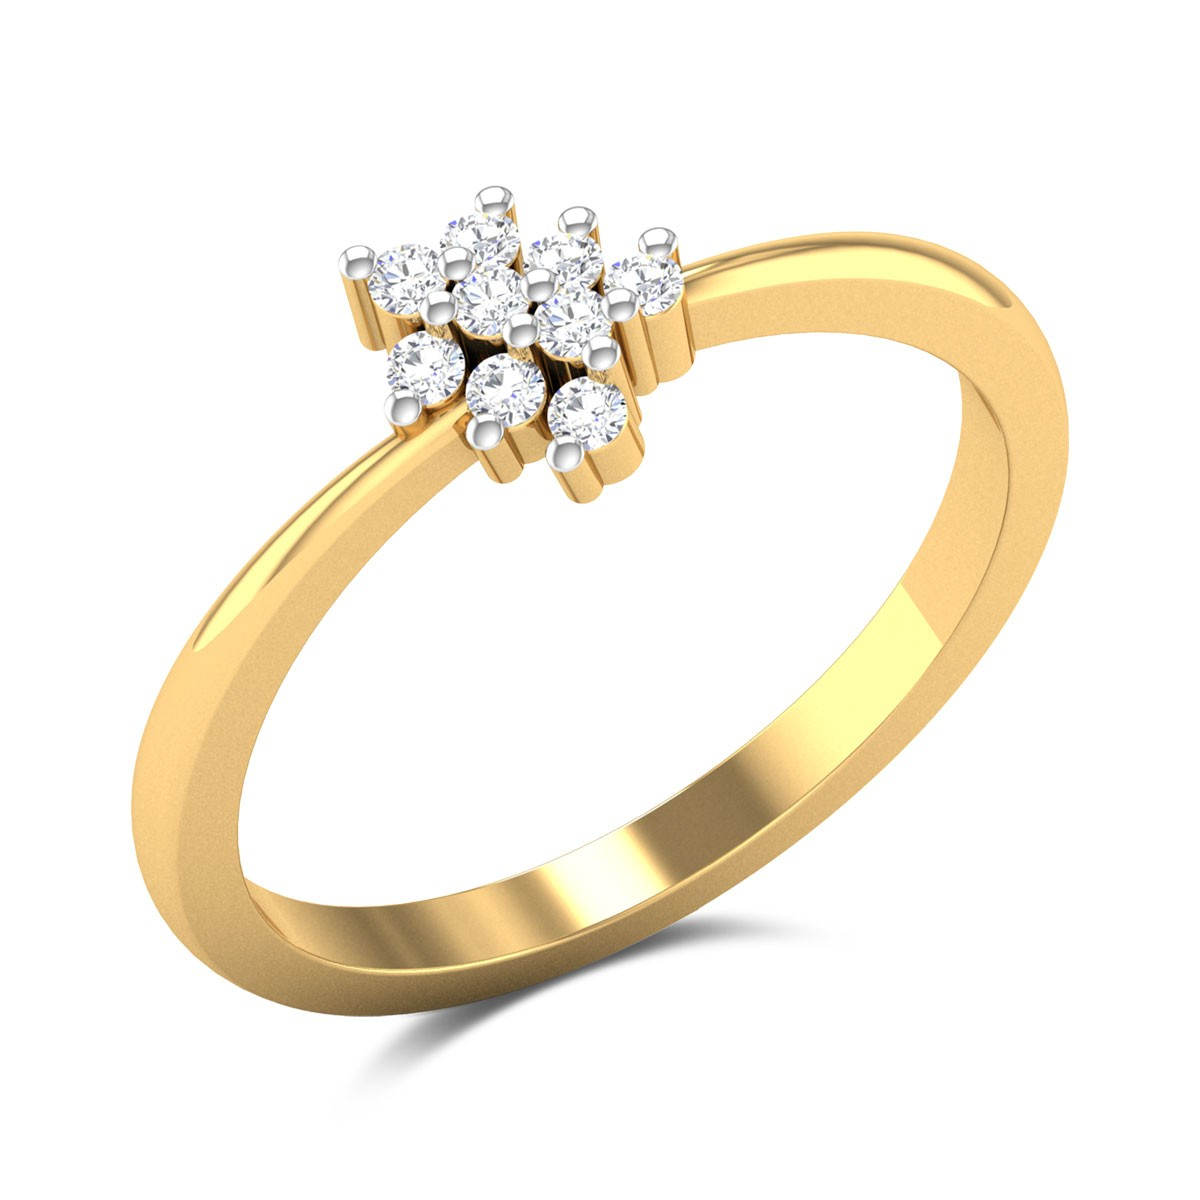 Hima Diamond Ring